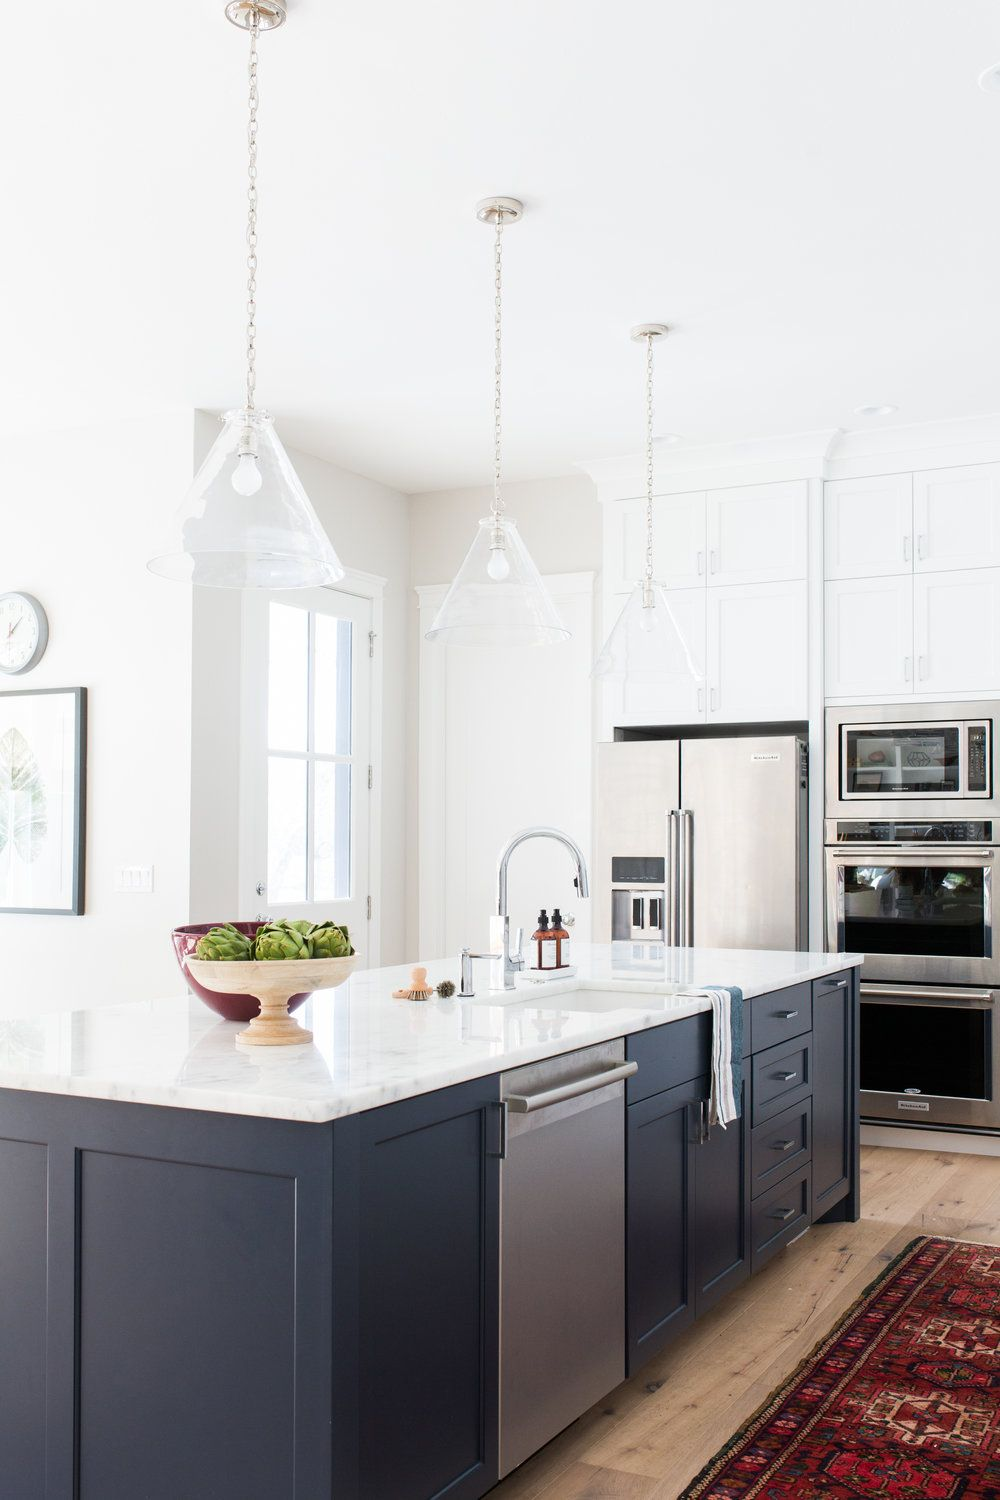 How To Remodel A Kitchen Ly Mycoffeepot Org